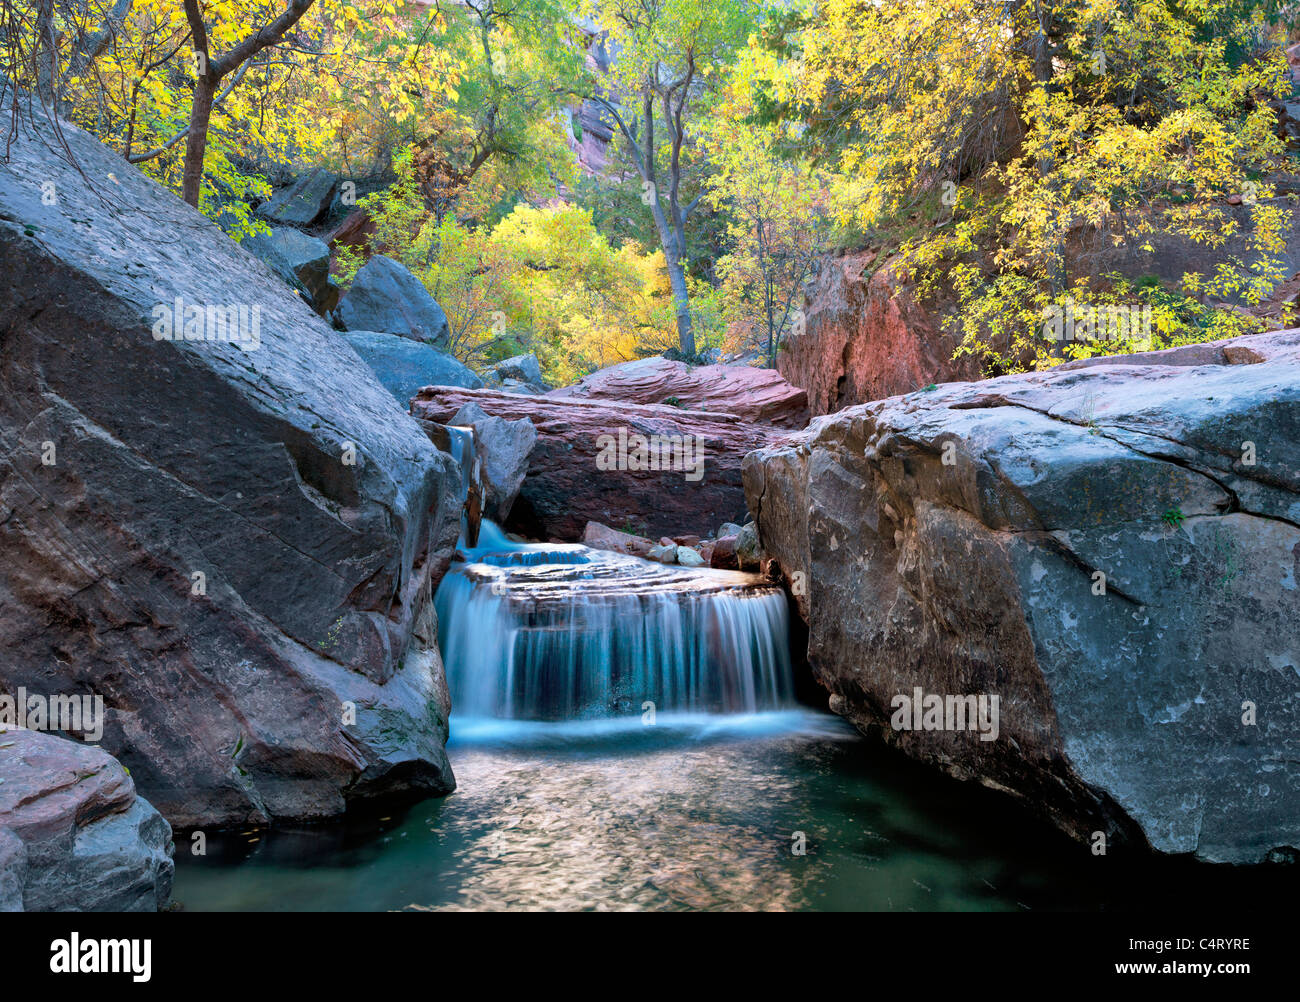 Small waterfall on Left Fork of North Creek with fall colors. Zion National Park, Utah. - Stock Image